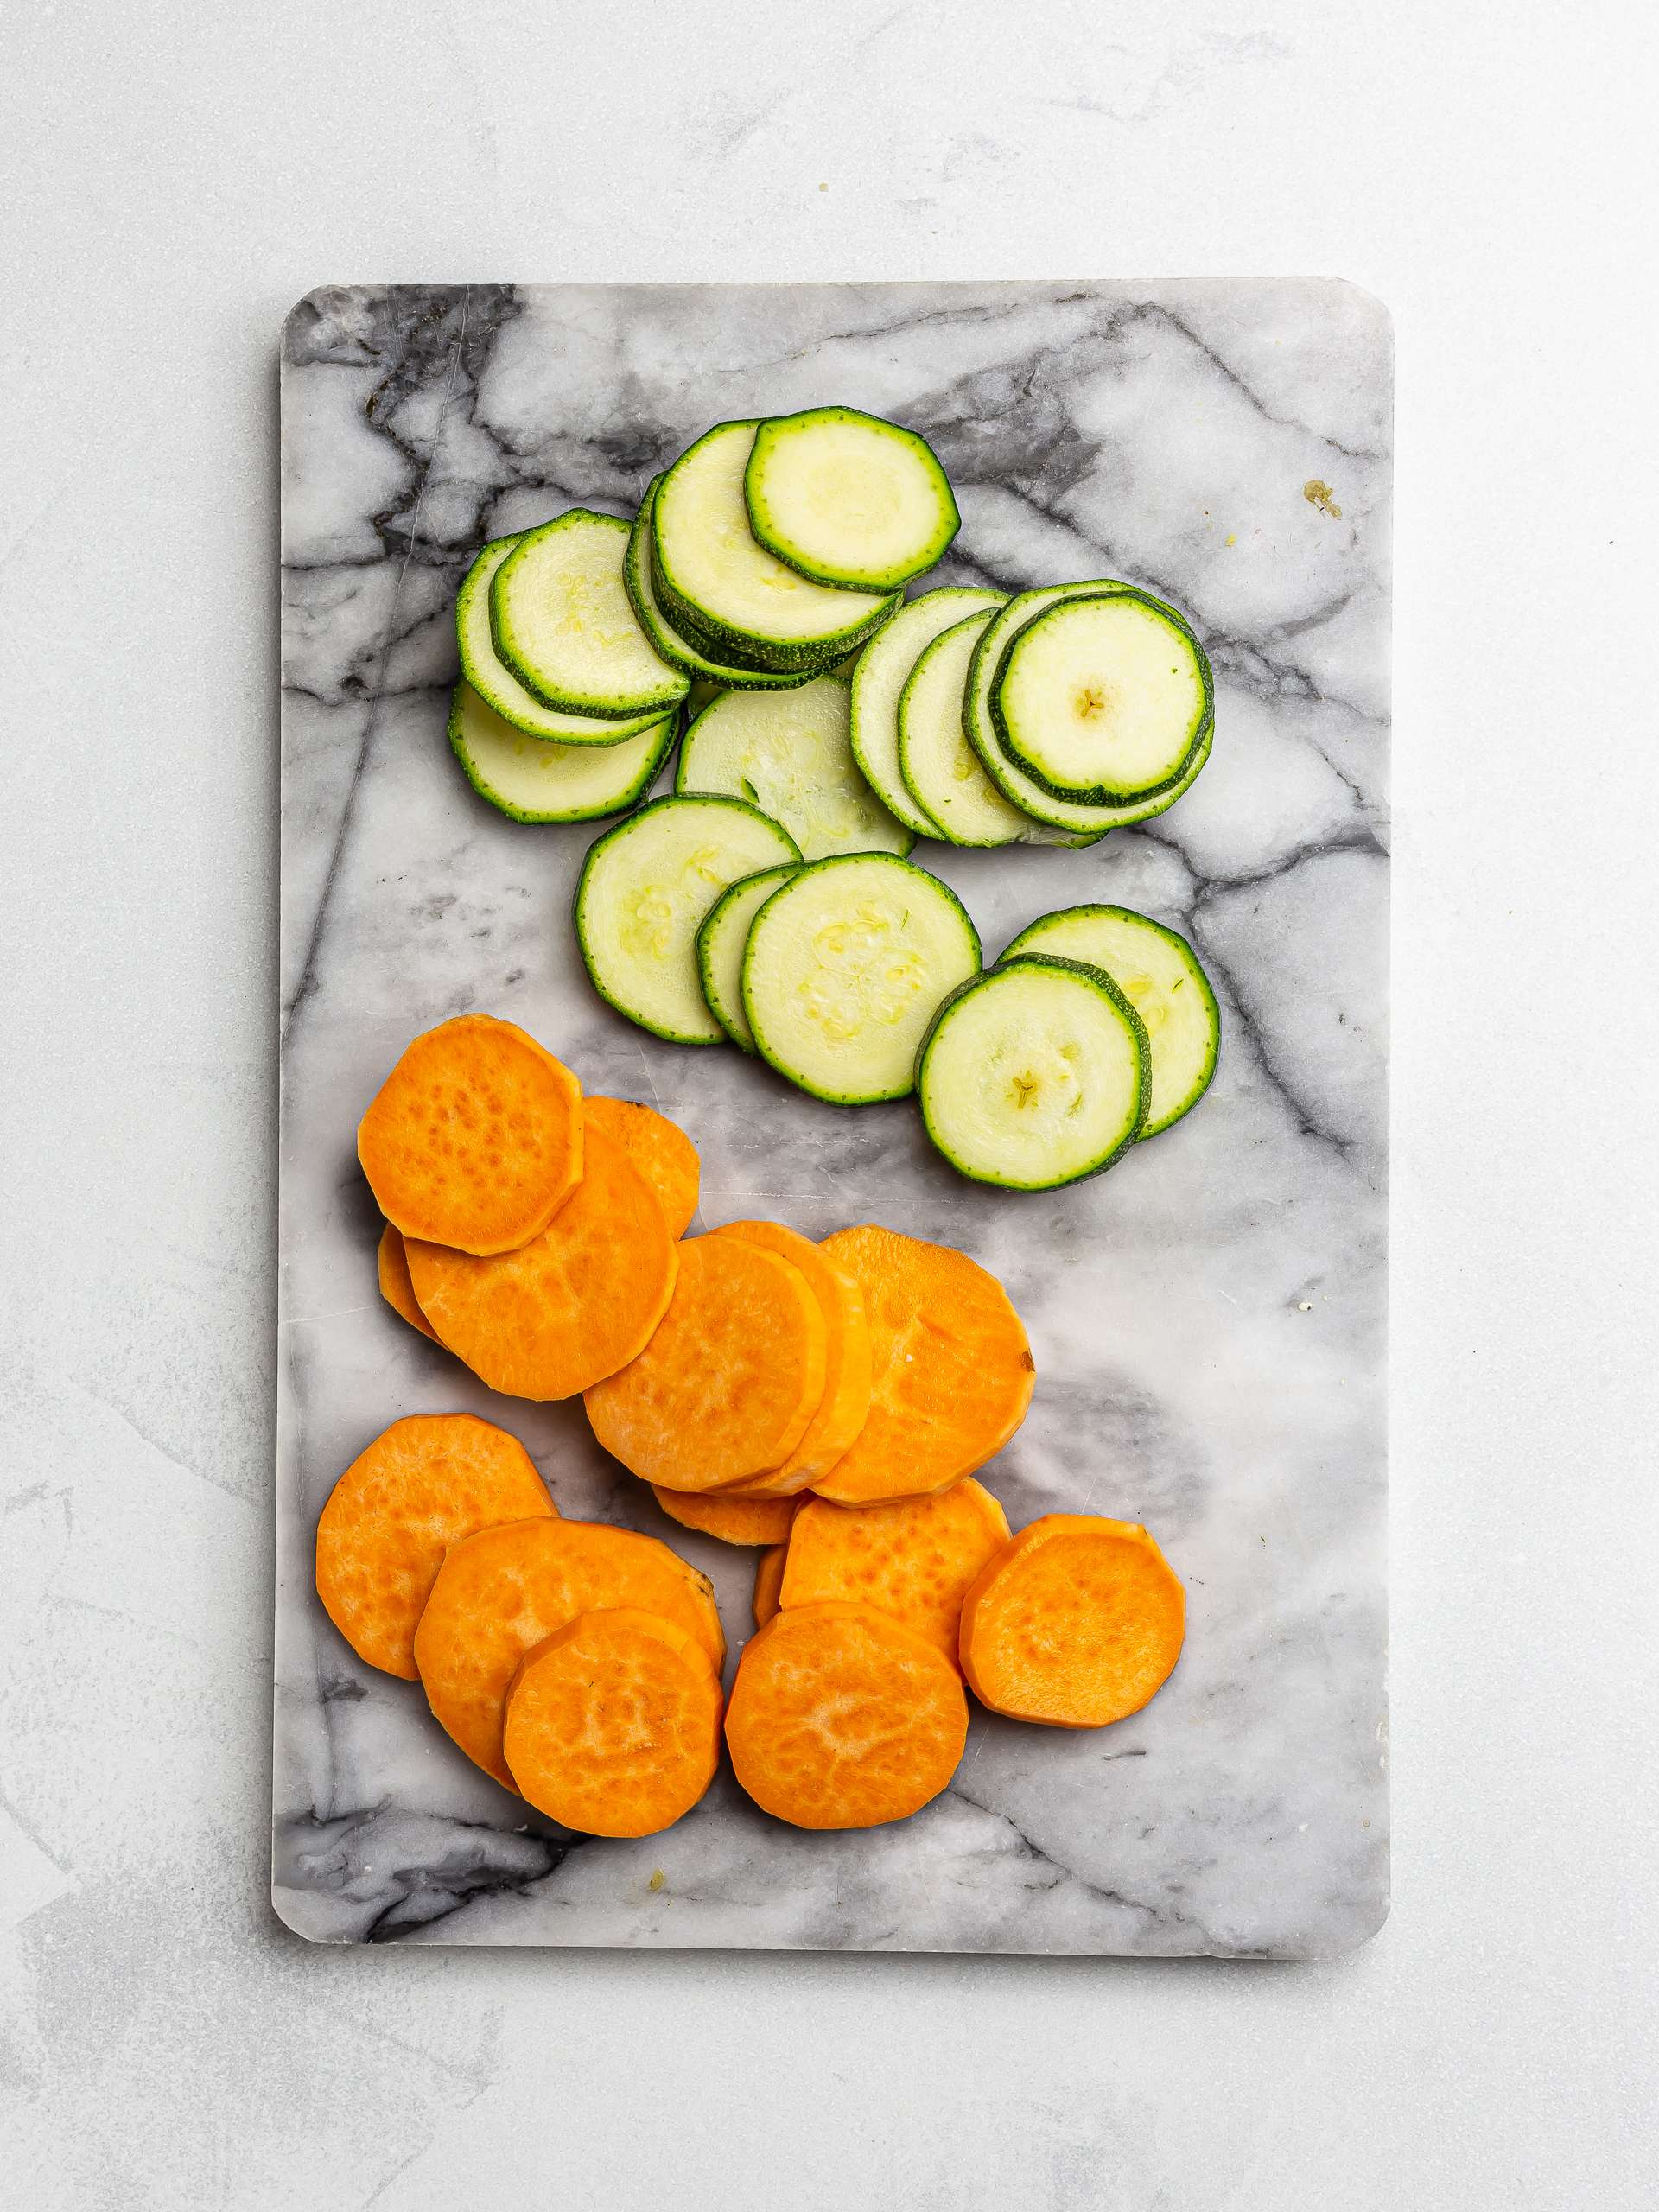 sliced courgettes and sweet potatoes